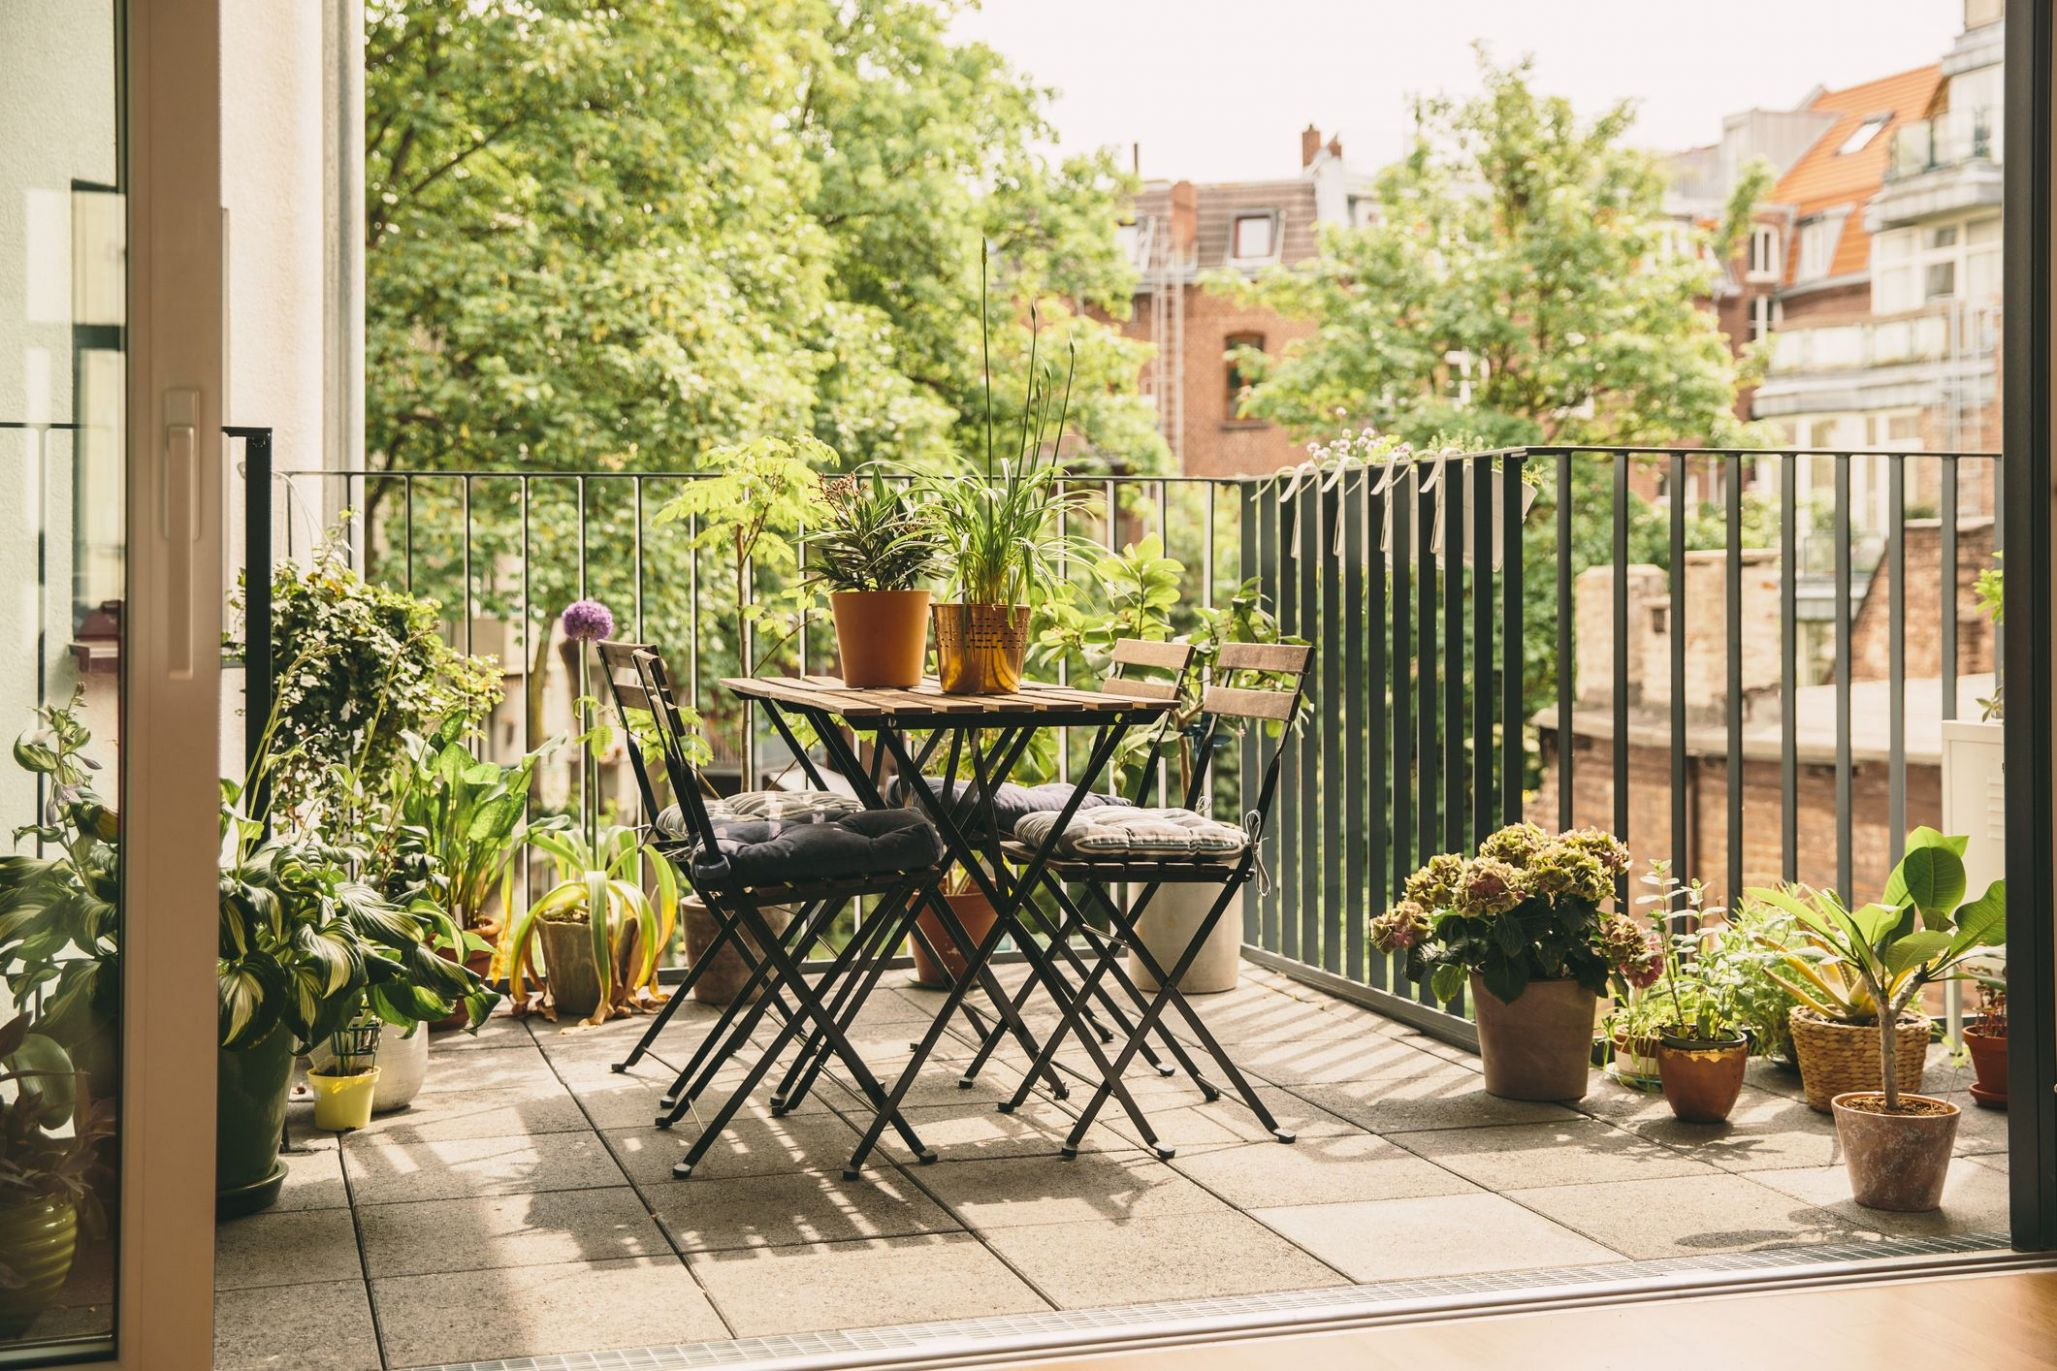 Balcony Garden Ideas - Plants, Furniture and Affordable Updates - balcony design ideas uk